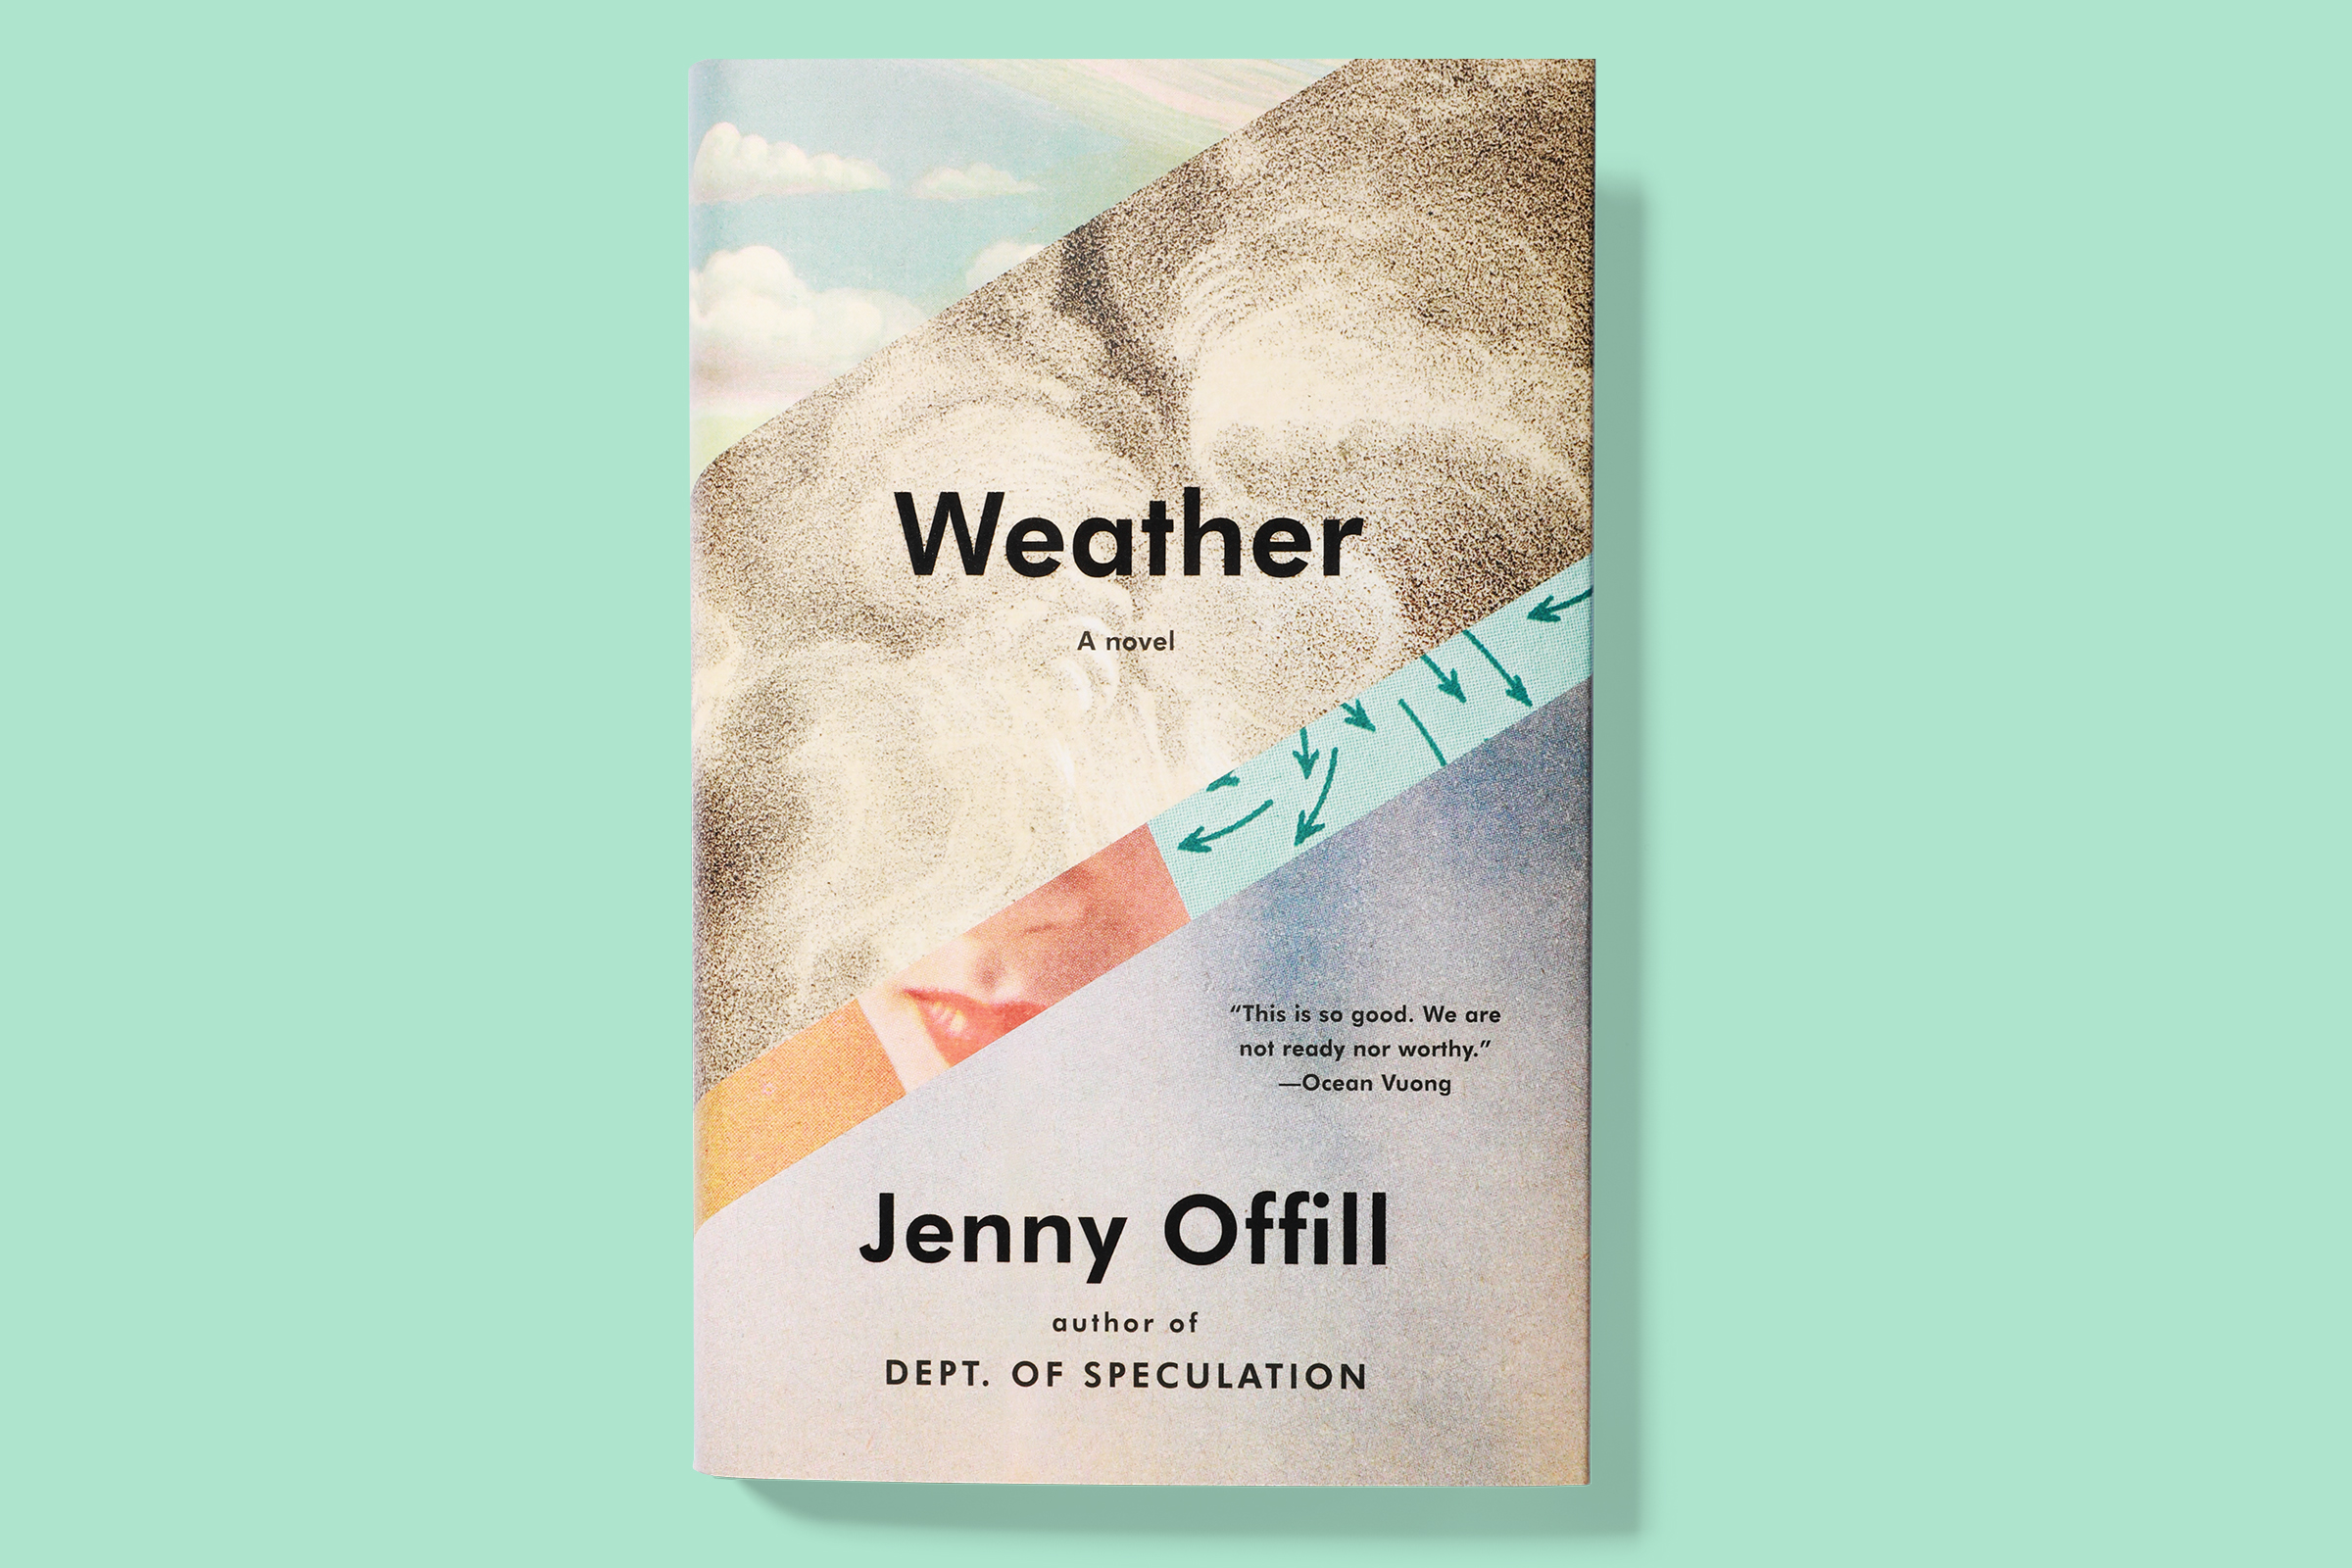 Weather is Offill's third novel, after Dept. of Speculation and Last Things